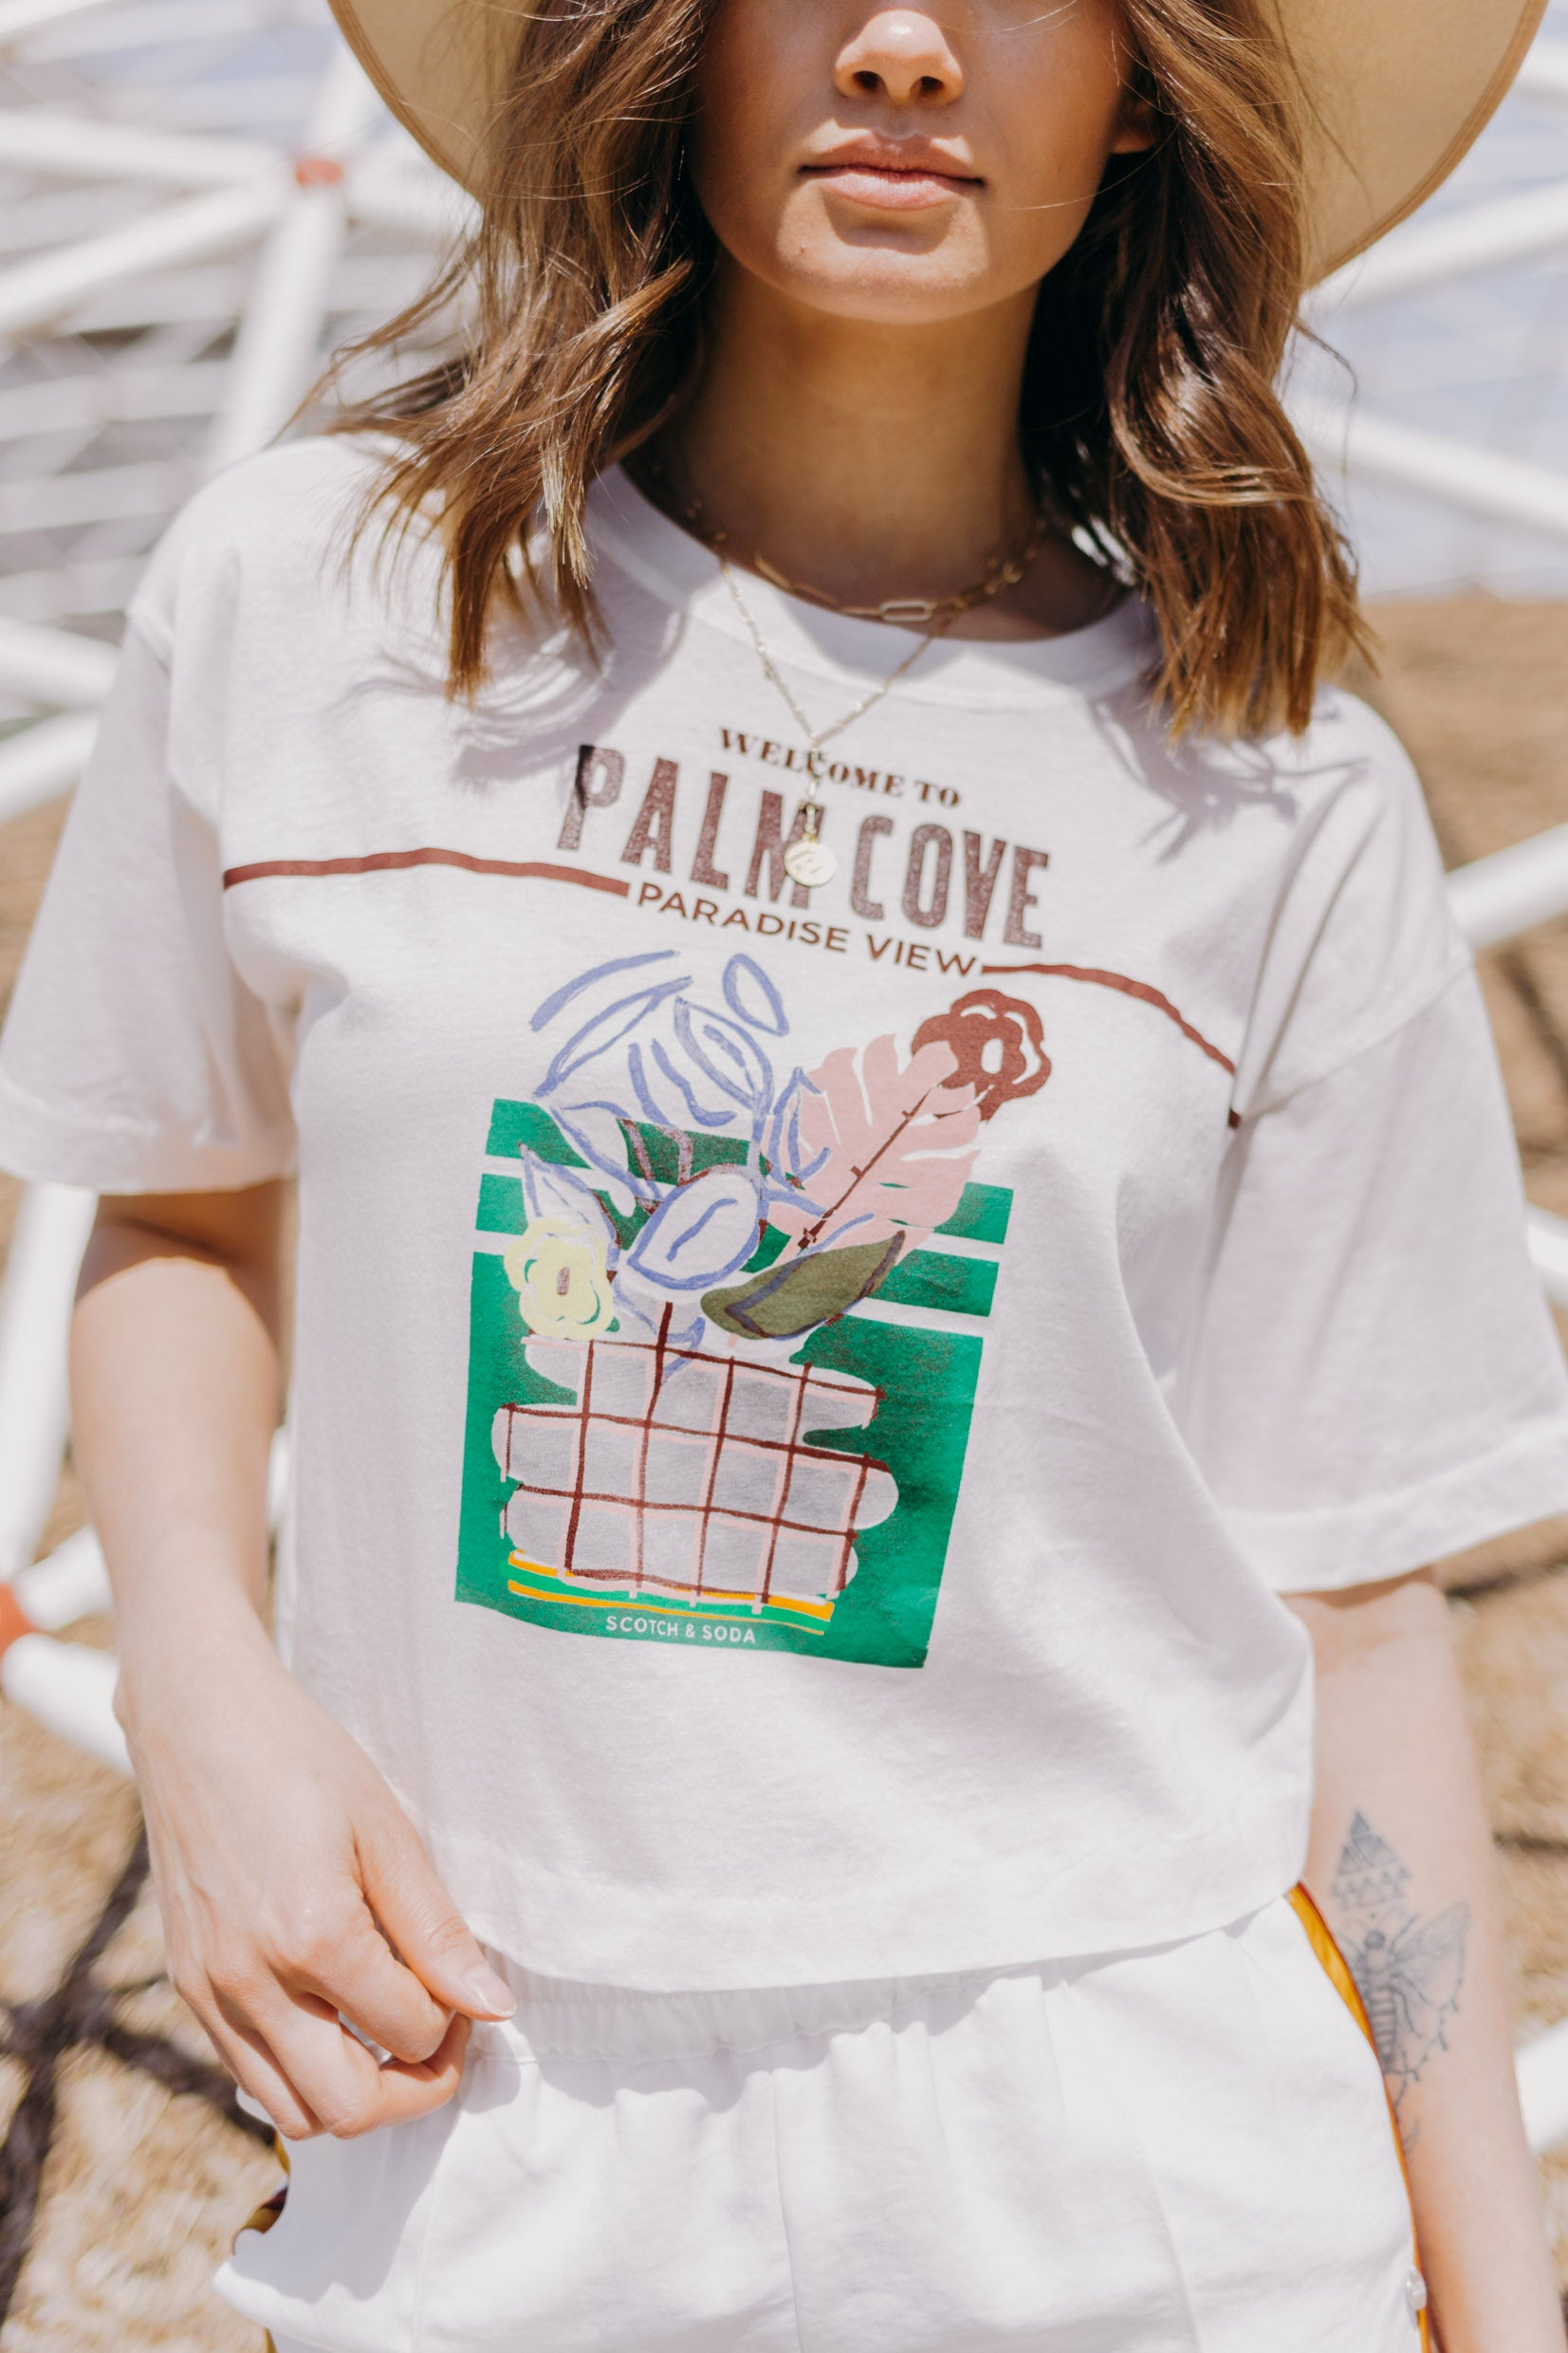 Scotch & Soda Oversized 'Palm Cove' T-shirt